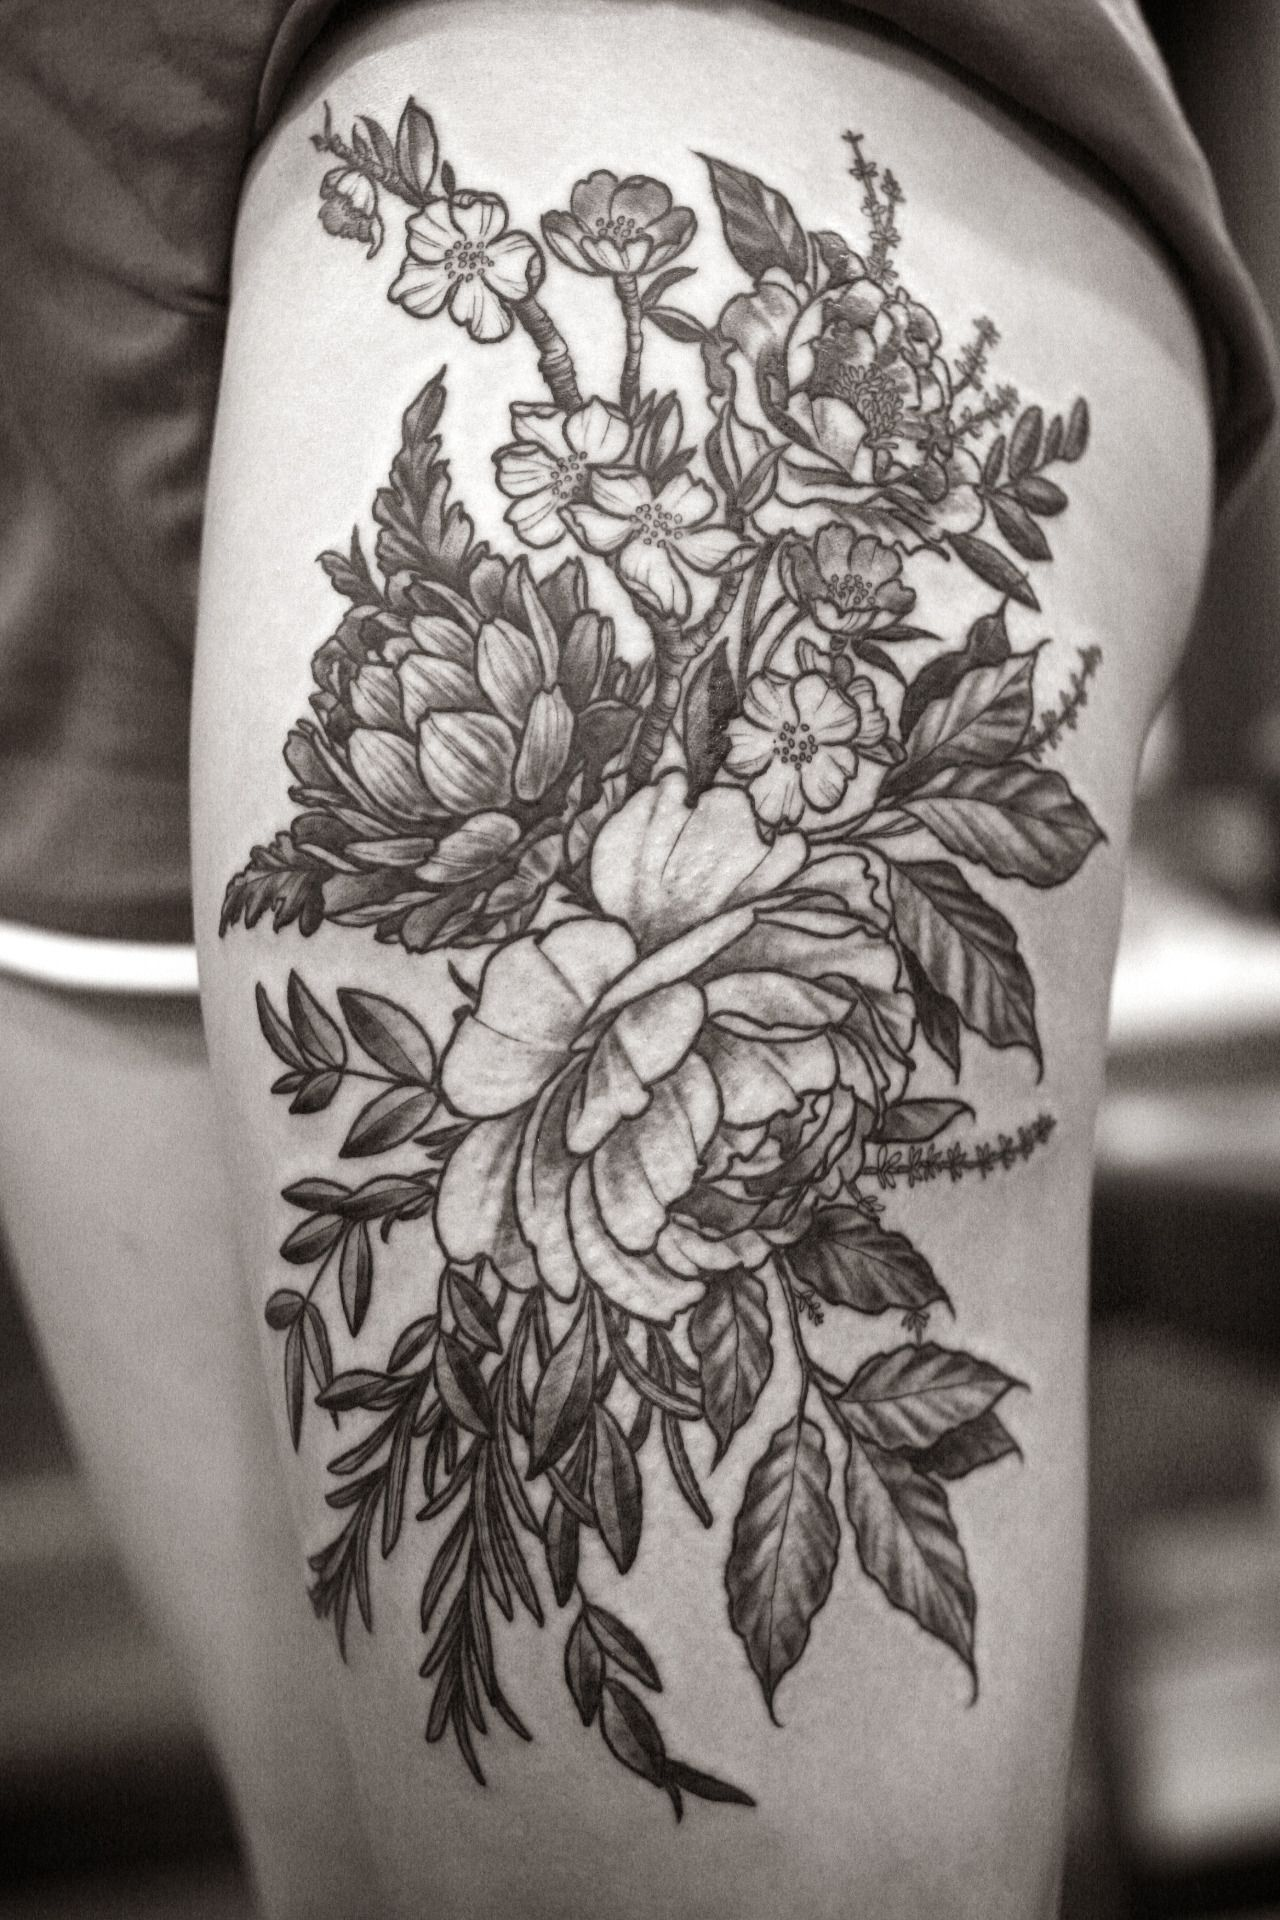 Detailed Black and White Floral thigh piece by Alice